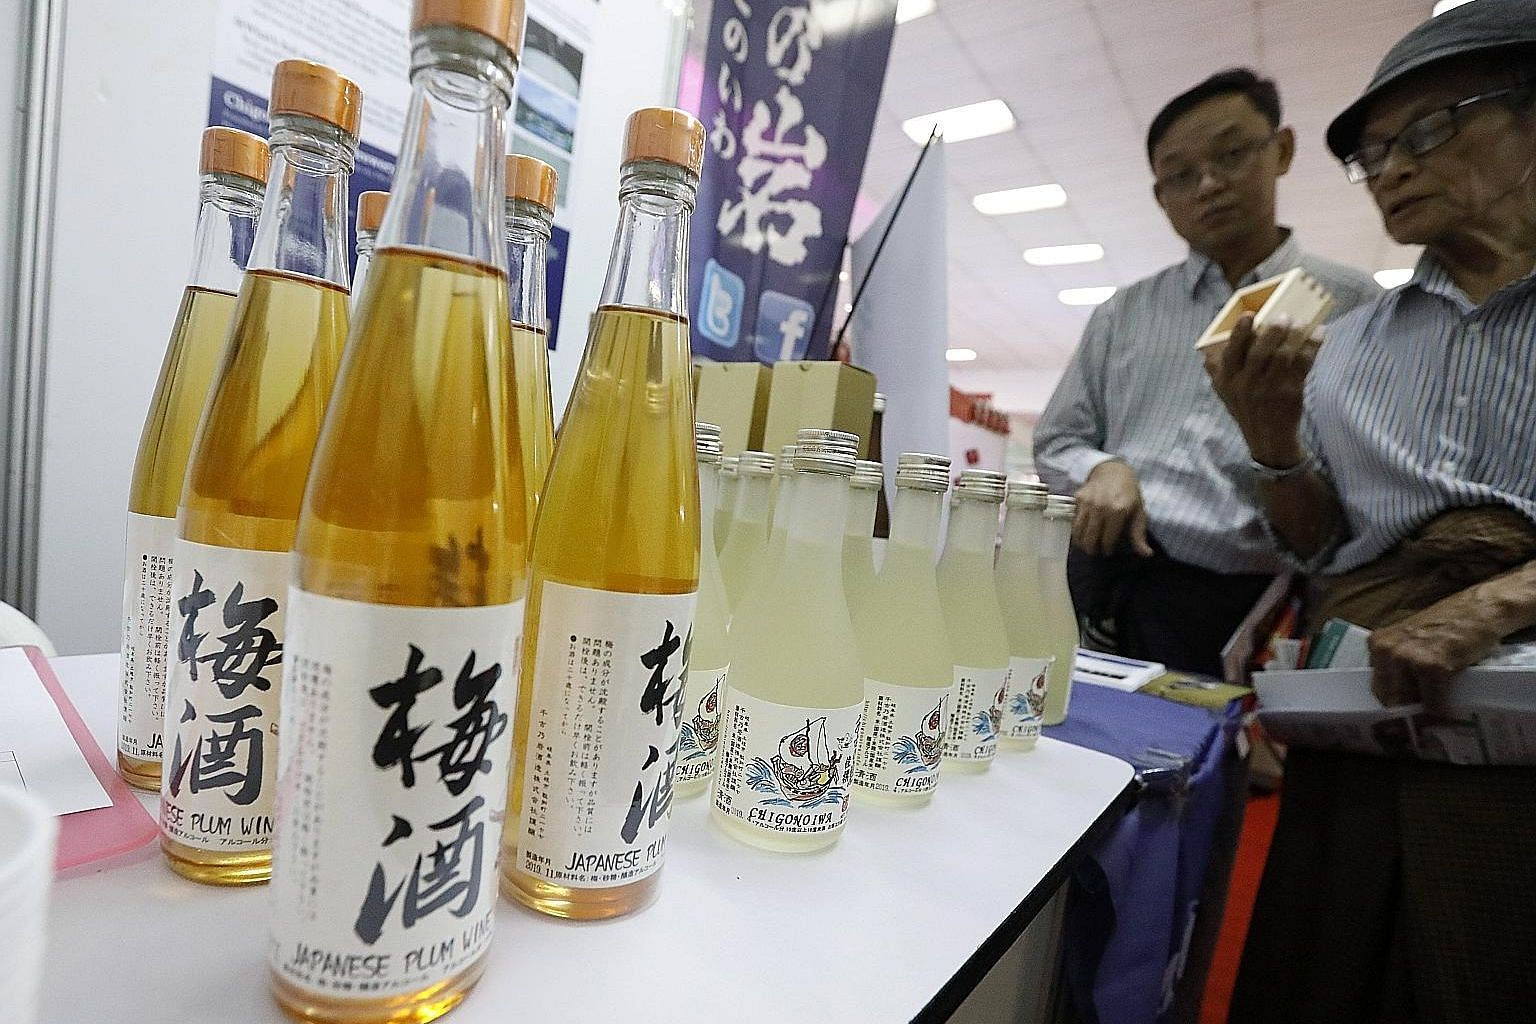 Visitors checking out Japanese sake during the 8th Japan Expo 2019 at Tatmadaw Exhibition Hall in Yangon, Myanmar, earlier this month. The humble Japanese rice drink is gaining popularity outside Japan.